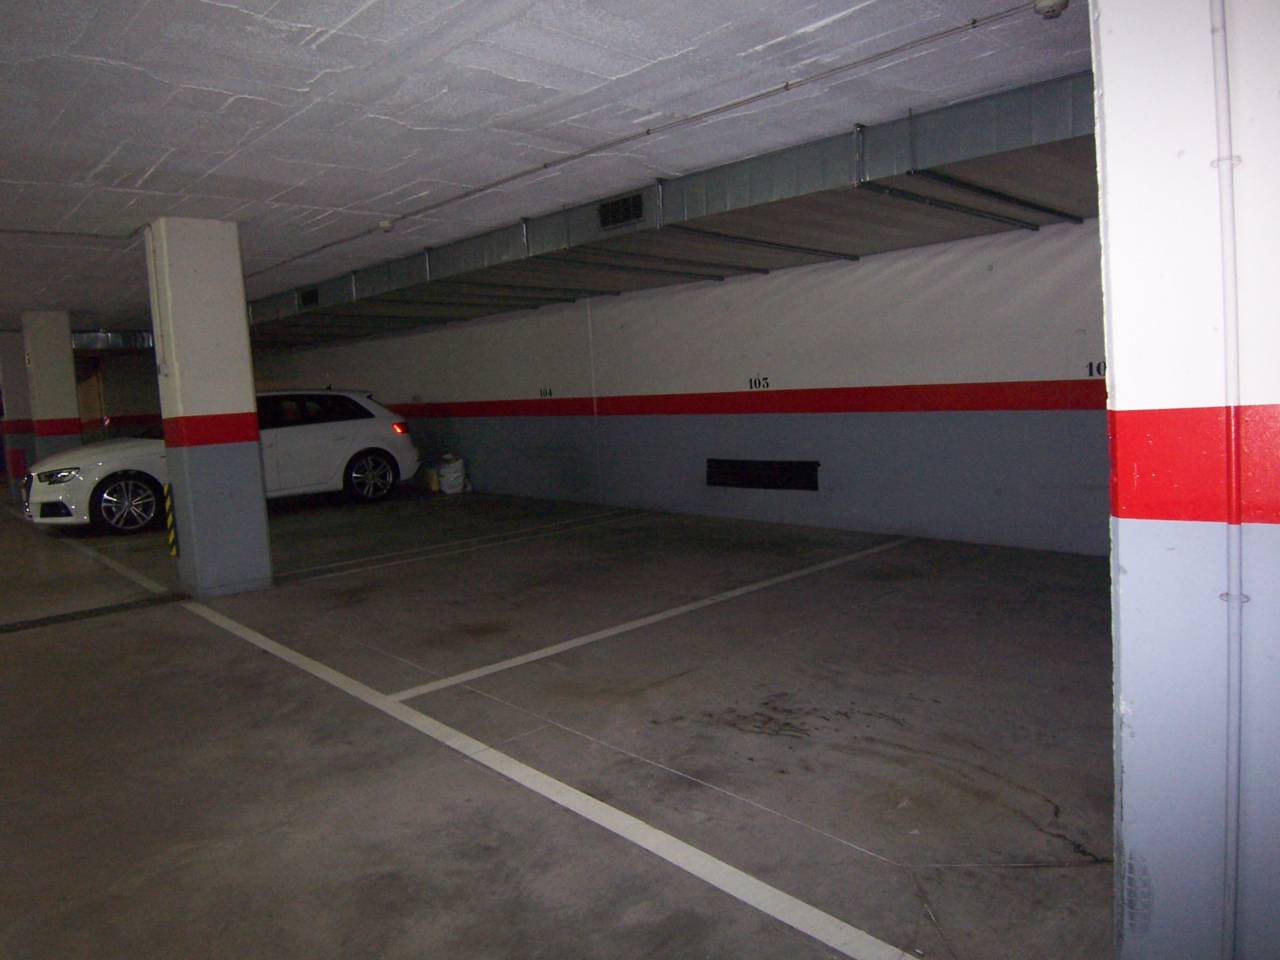 PLAZAS DE PARKING C/ SANT PAU, 76- CENTRO (ref. 40559)